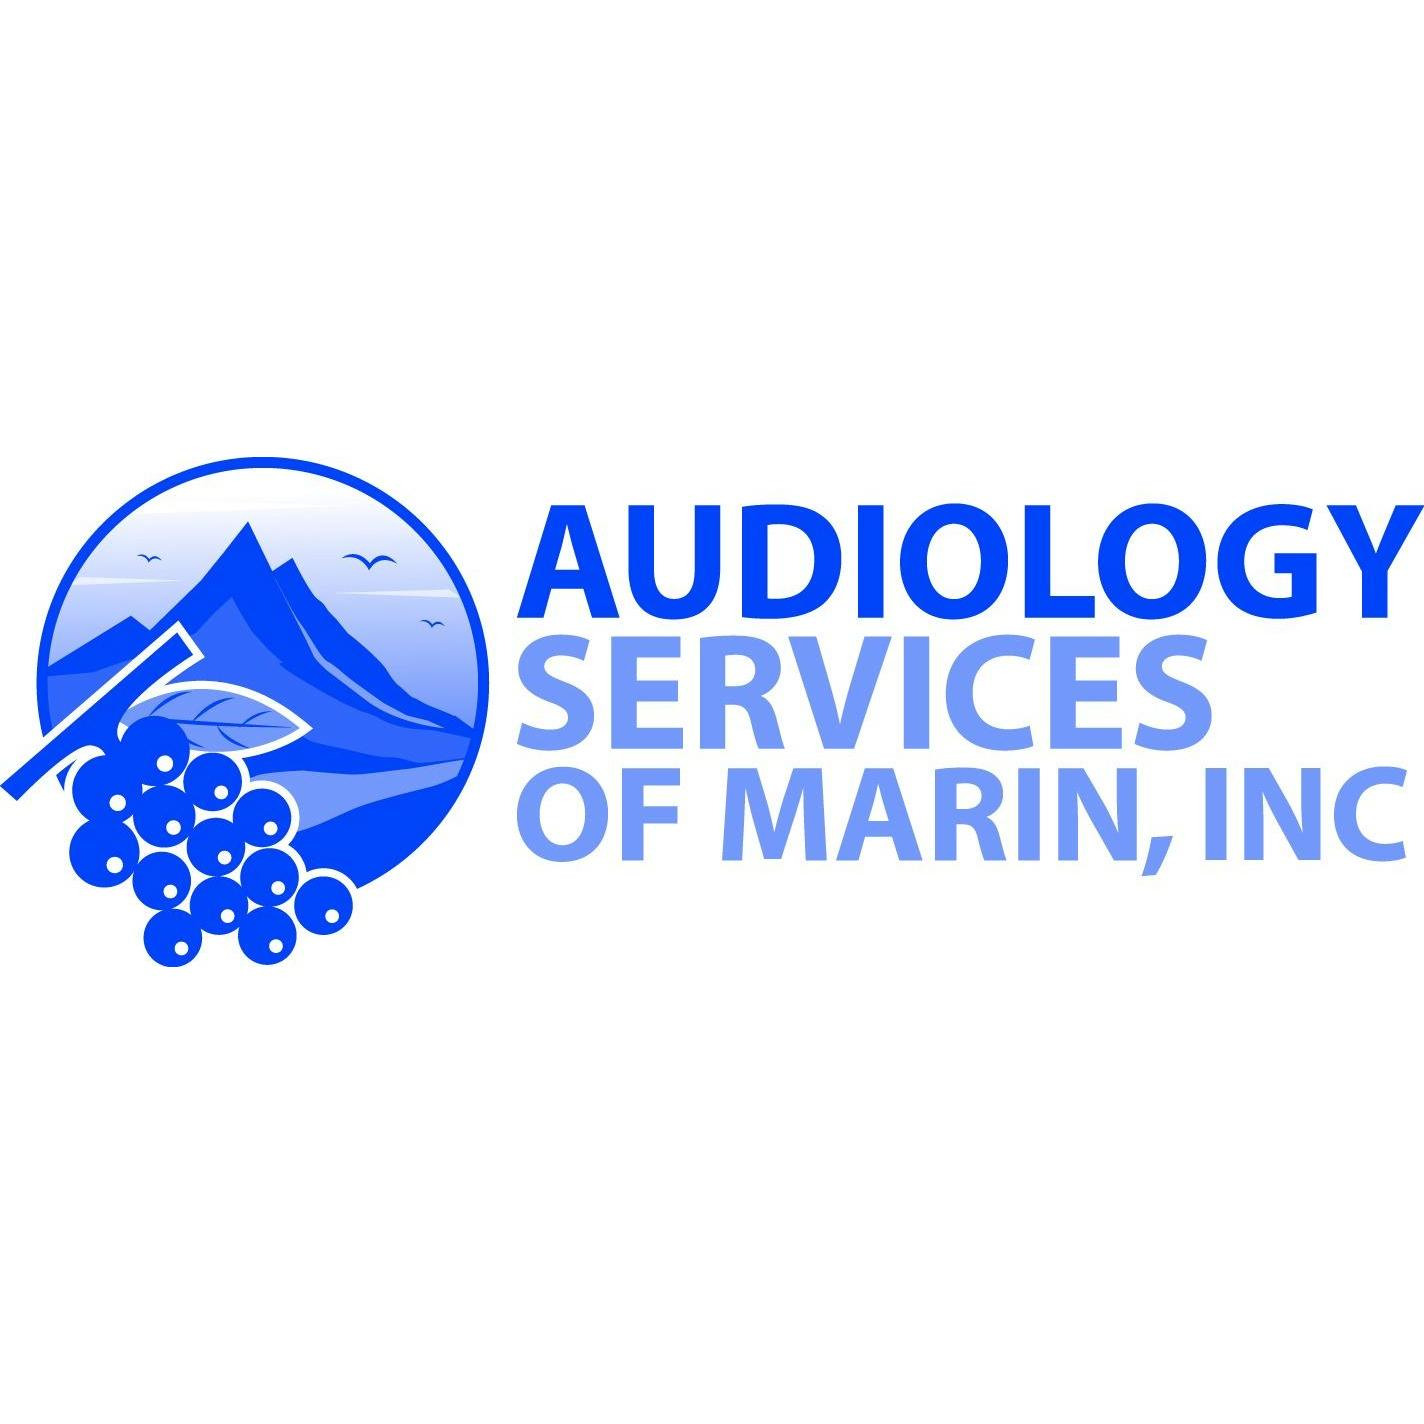 Audiology Services of Marin